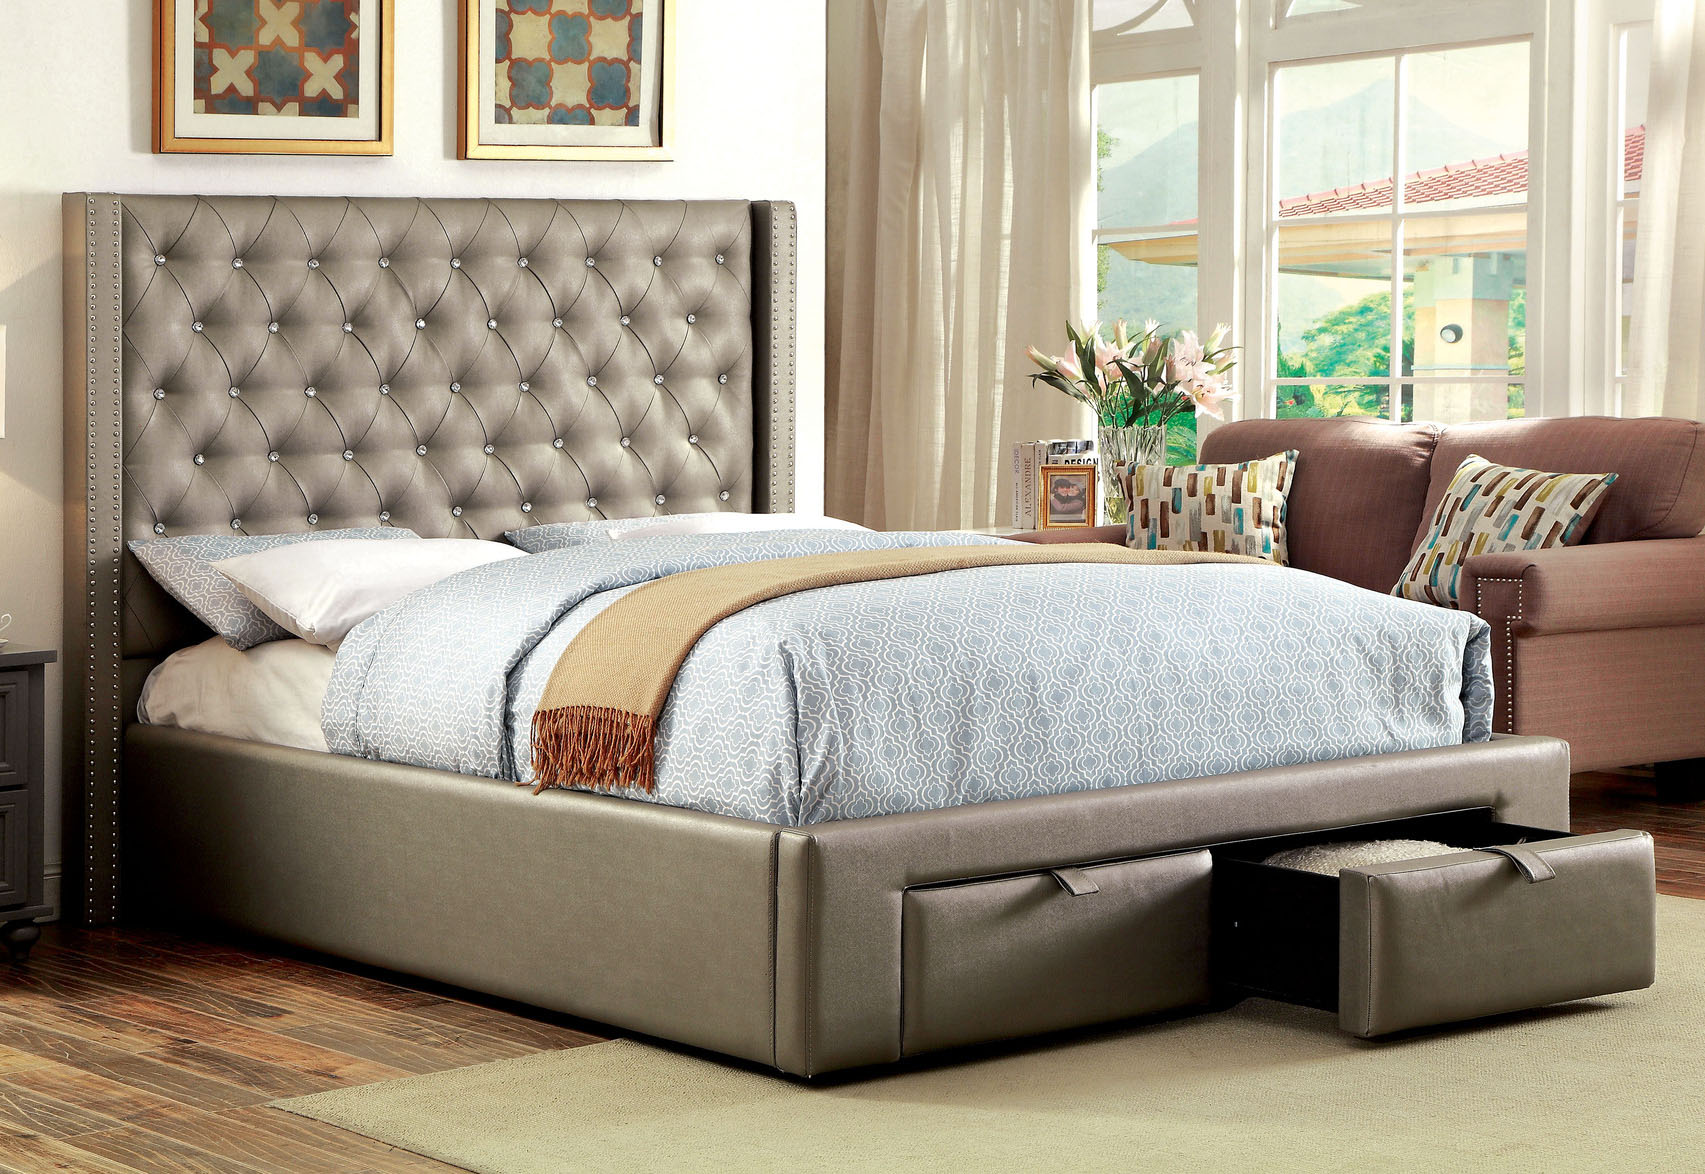 Storage Beds: Small Bedroom Solutions - www.eFurnitureHouse.com